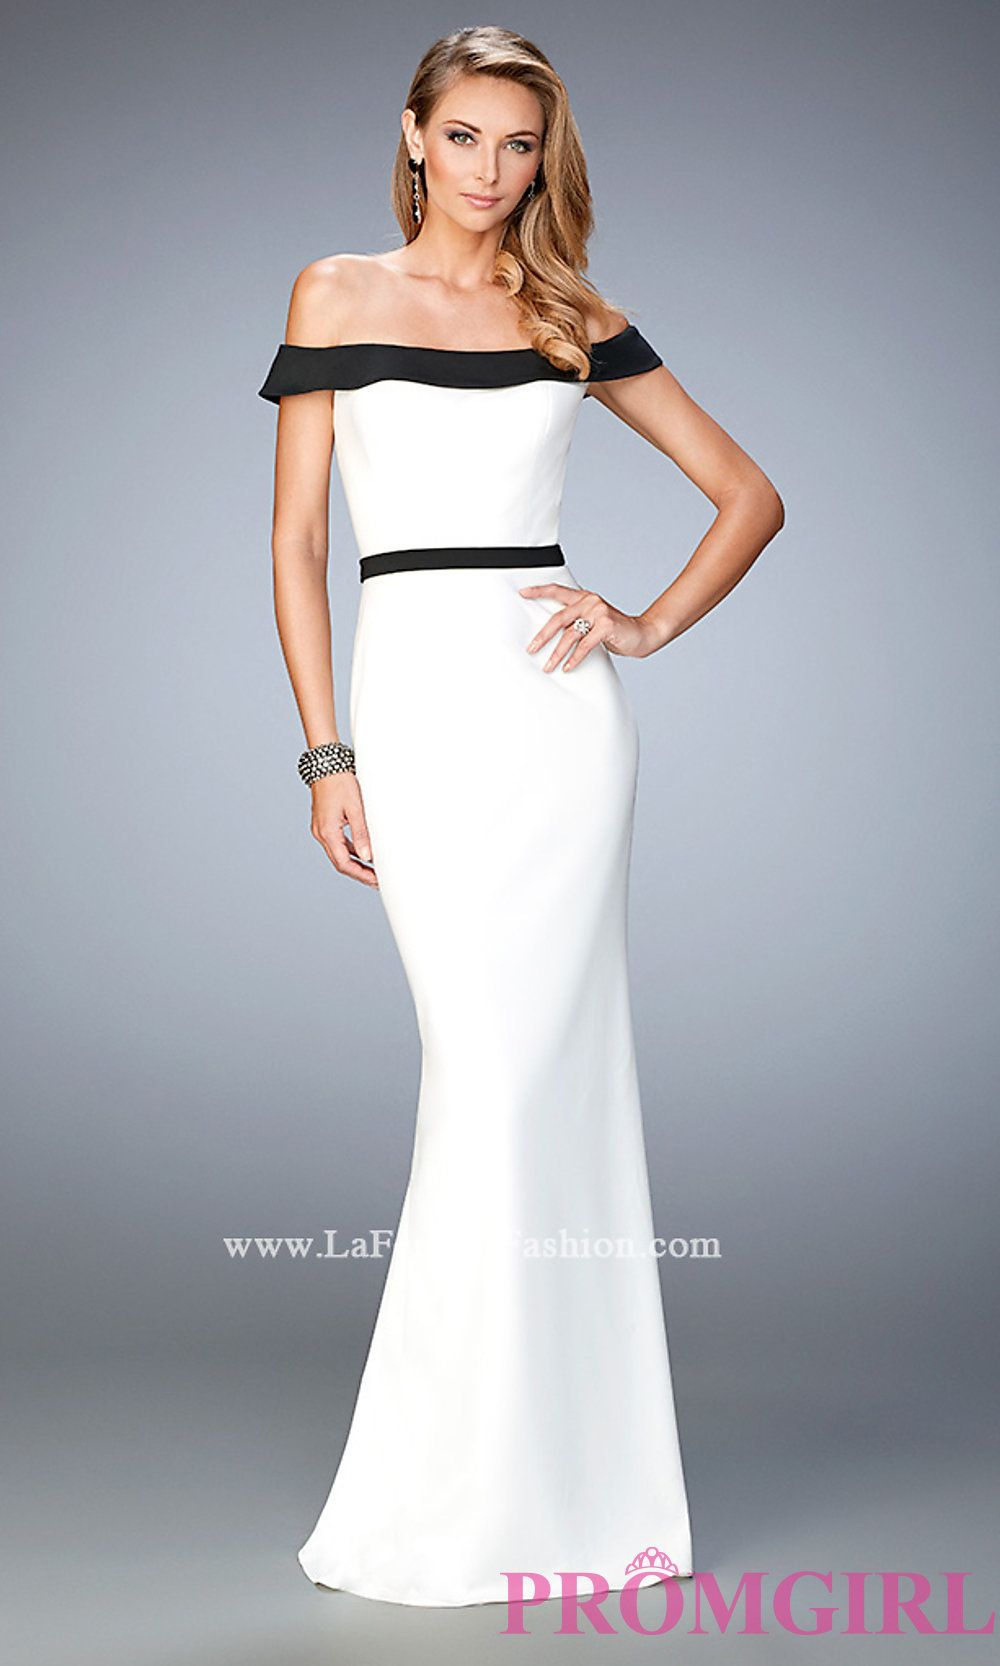 Off the Shoulder White and Black La Femme Dress Style: LF-22138 ...